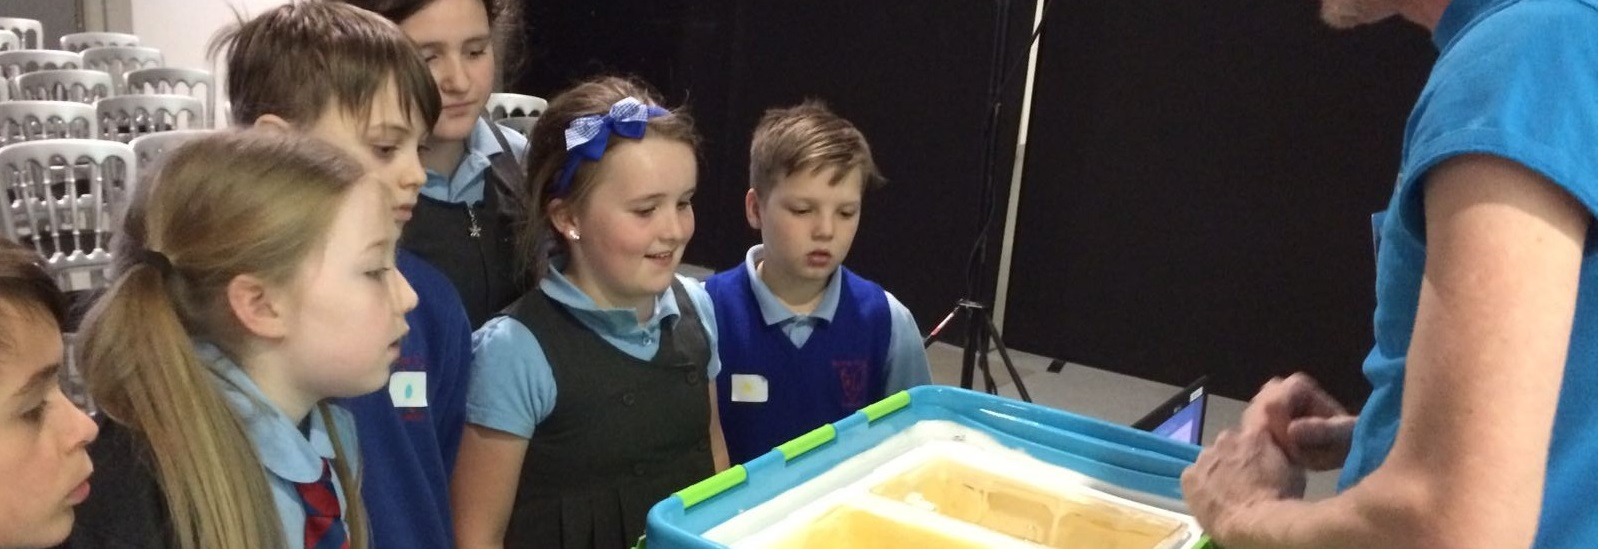 Hundreds of school children join Avon Water Salmon Science Project